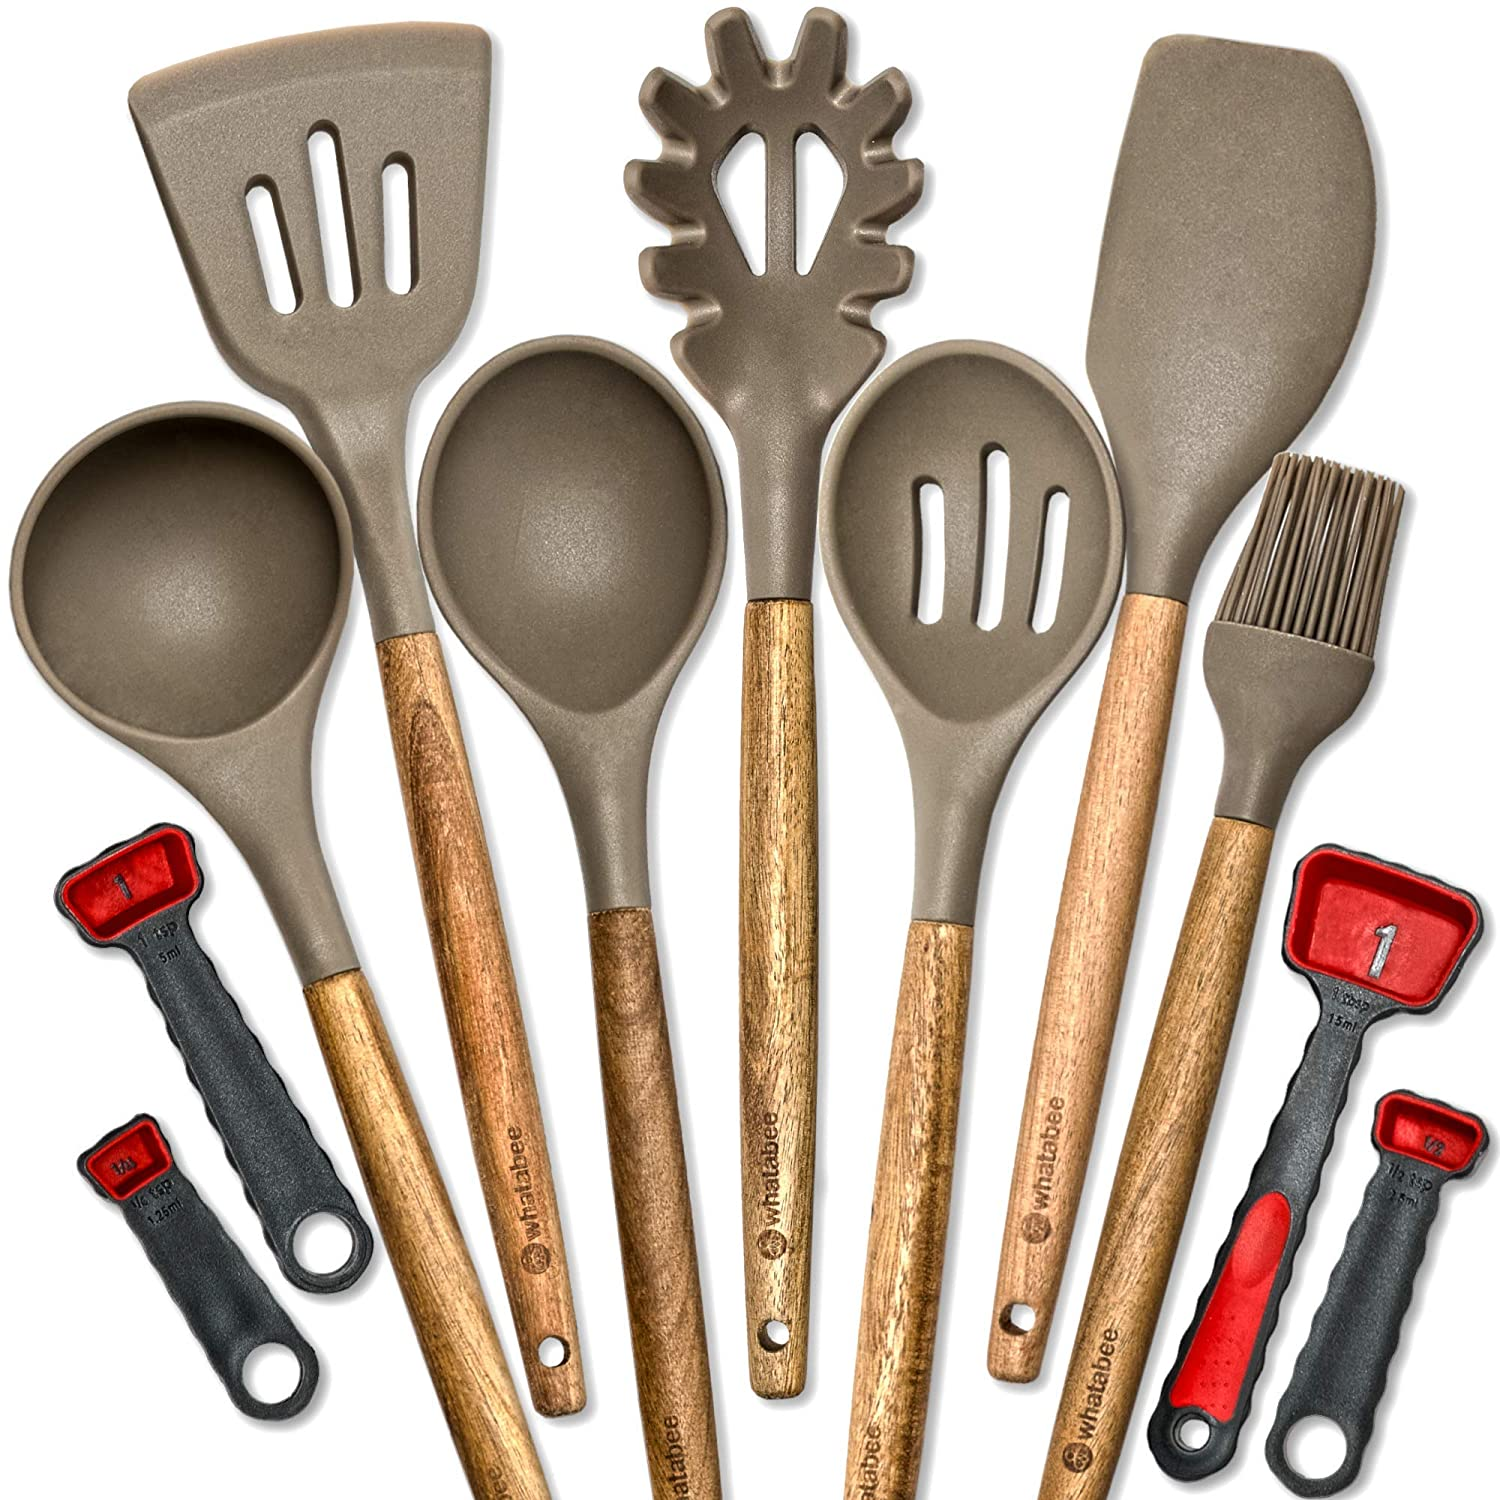 Silicone Kitchen Utensils set - 11 piece Camping Cooking Tools set, Grey - Heat Resistant Spatula & Spoon items for Nonstick Cookware plus Plastic Measuring Spoons - Acacia Hard Wood handles Whatabee UtW11